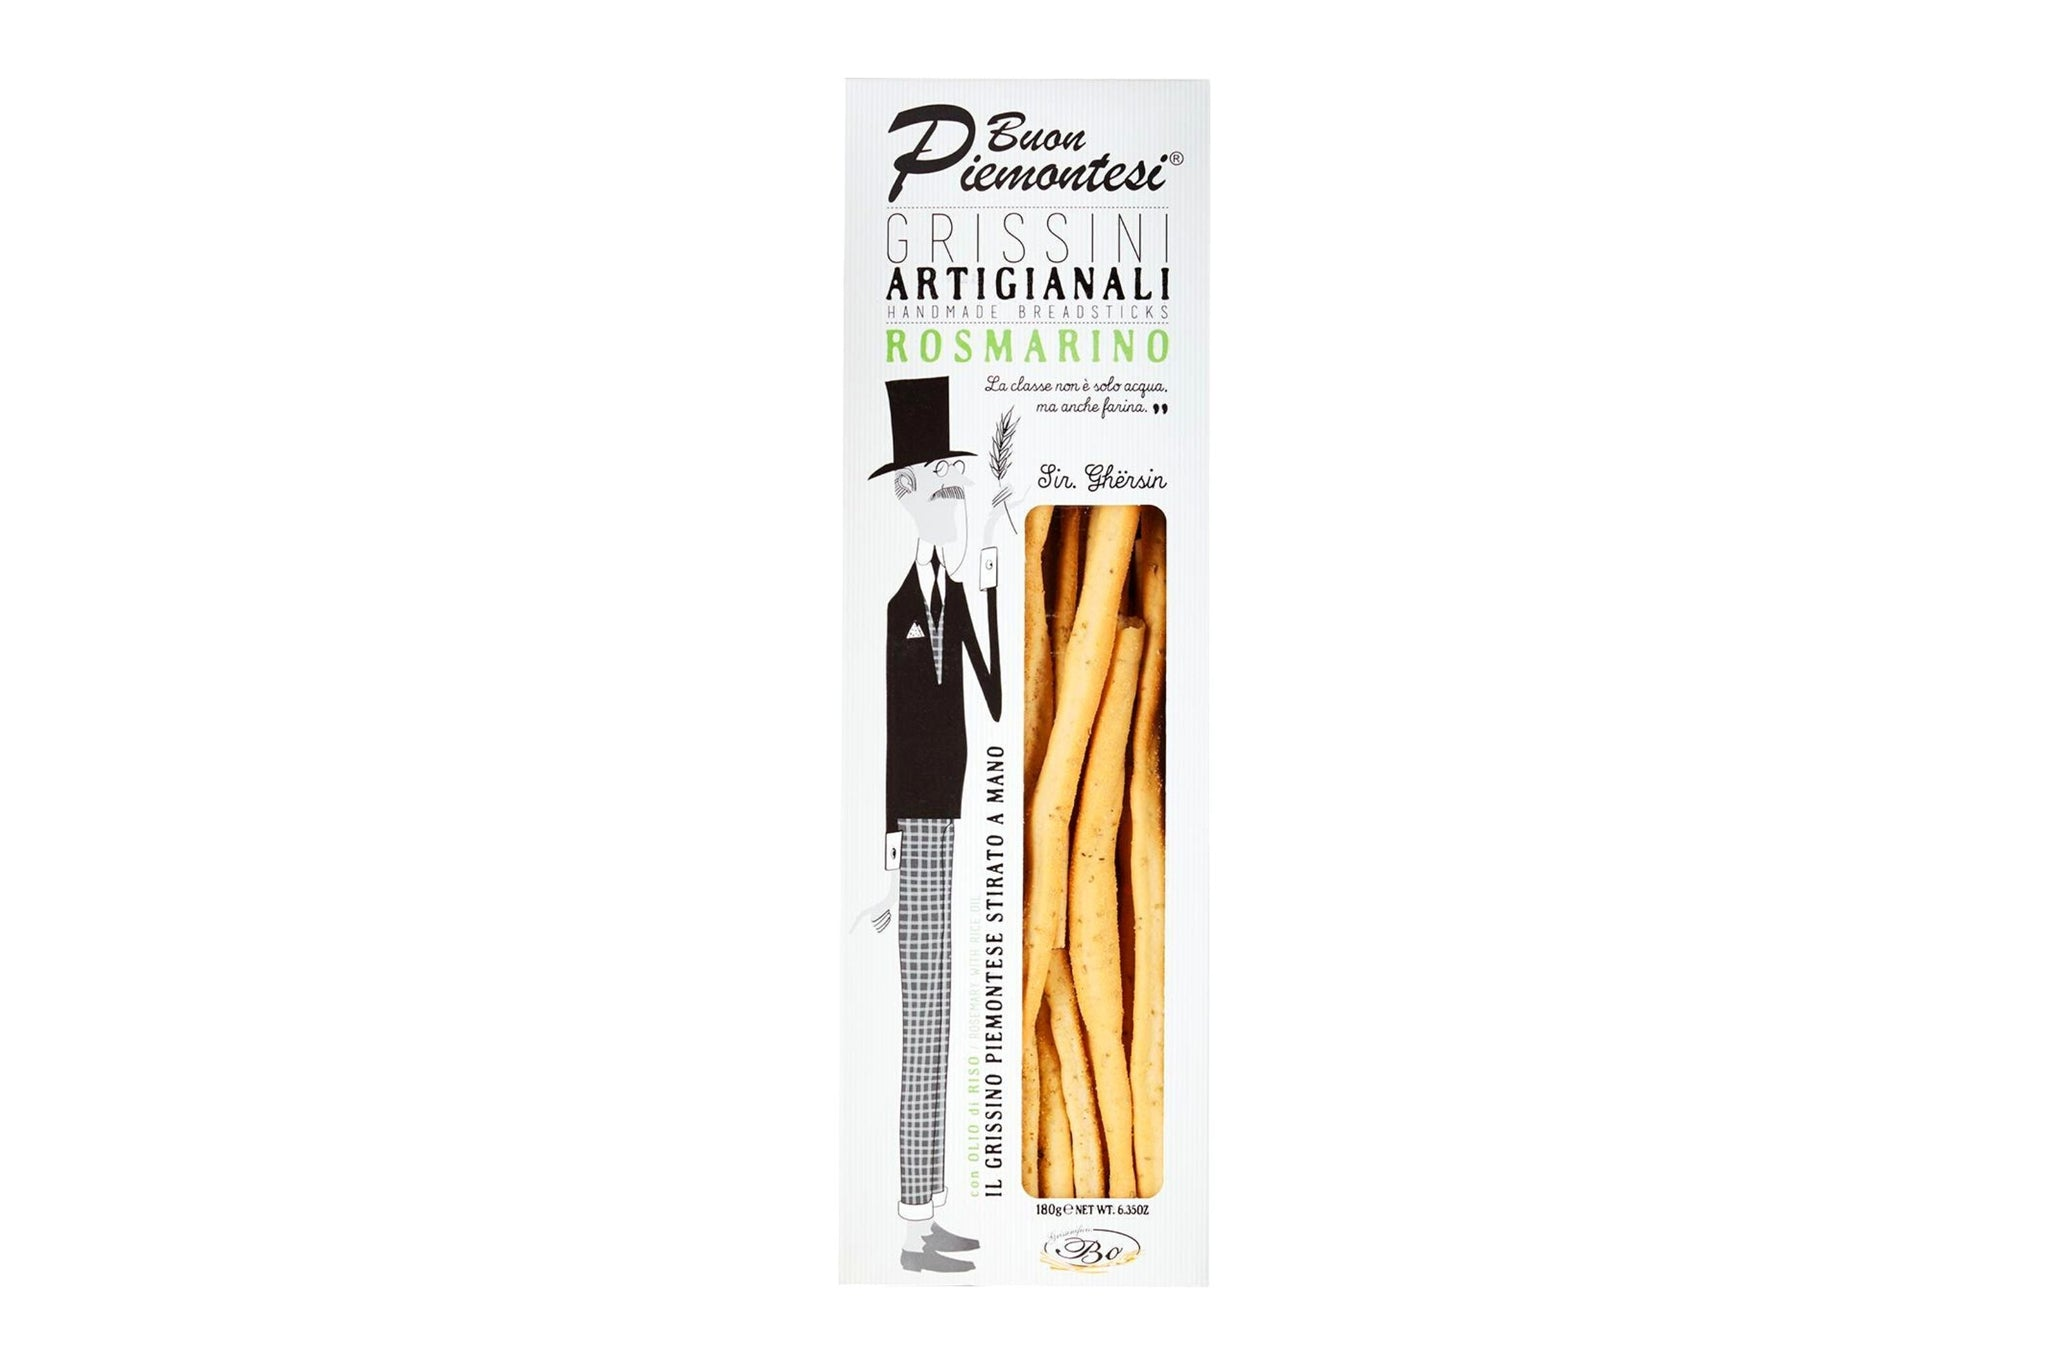 Grissinificio Bo Grissini Rosemary Recipe Artisanal Breadsticks 180g